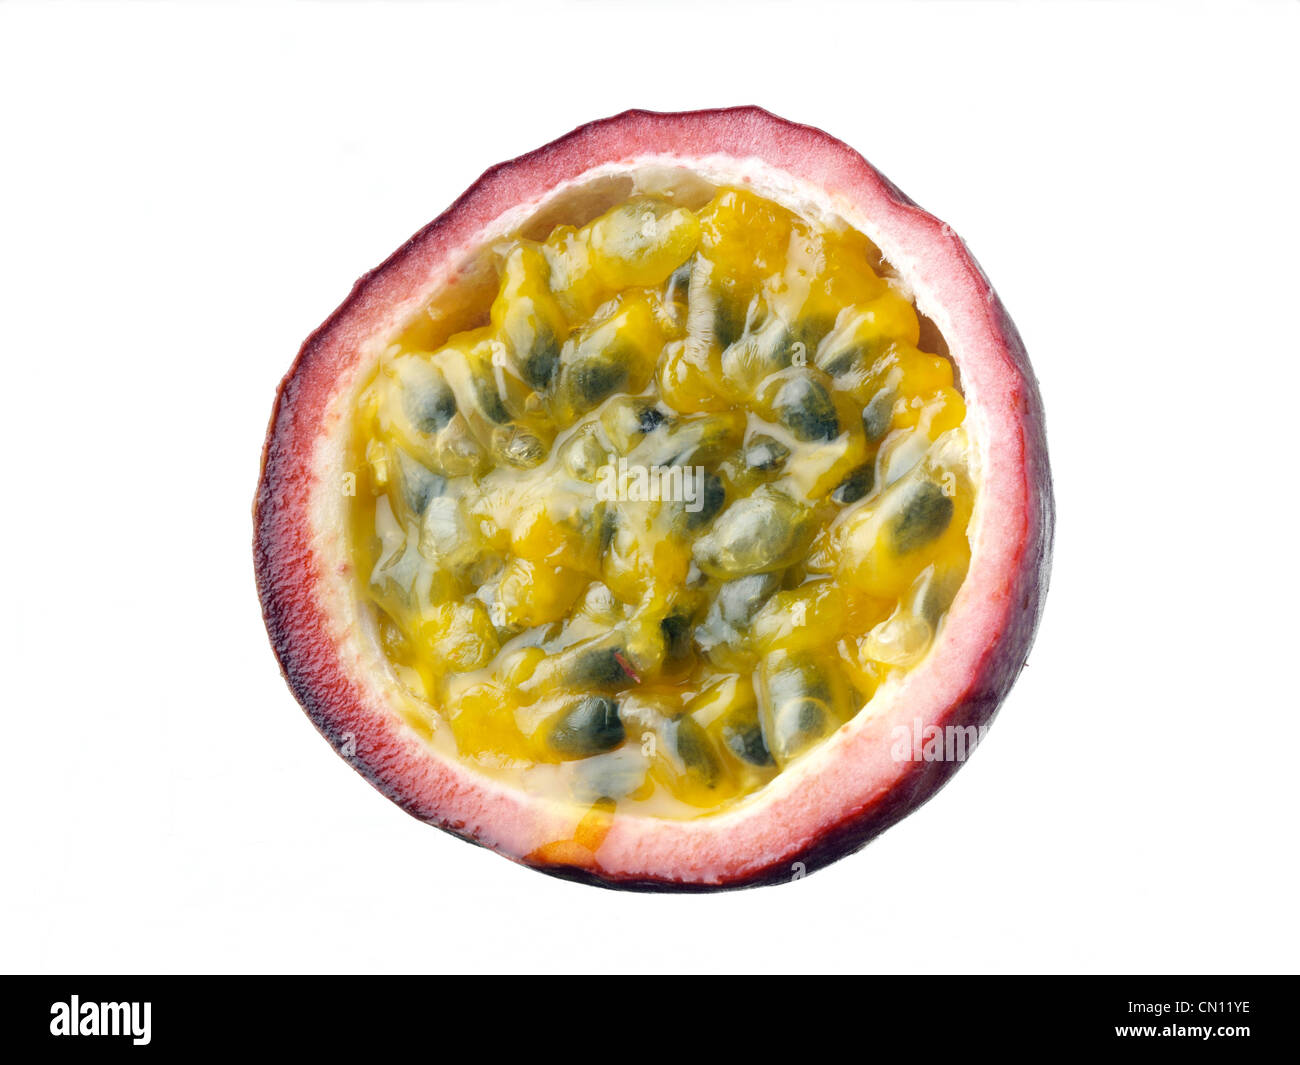 how to cut up passion fruit